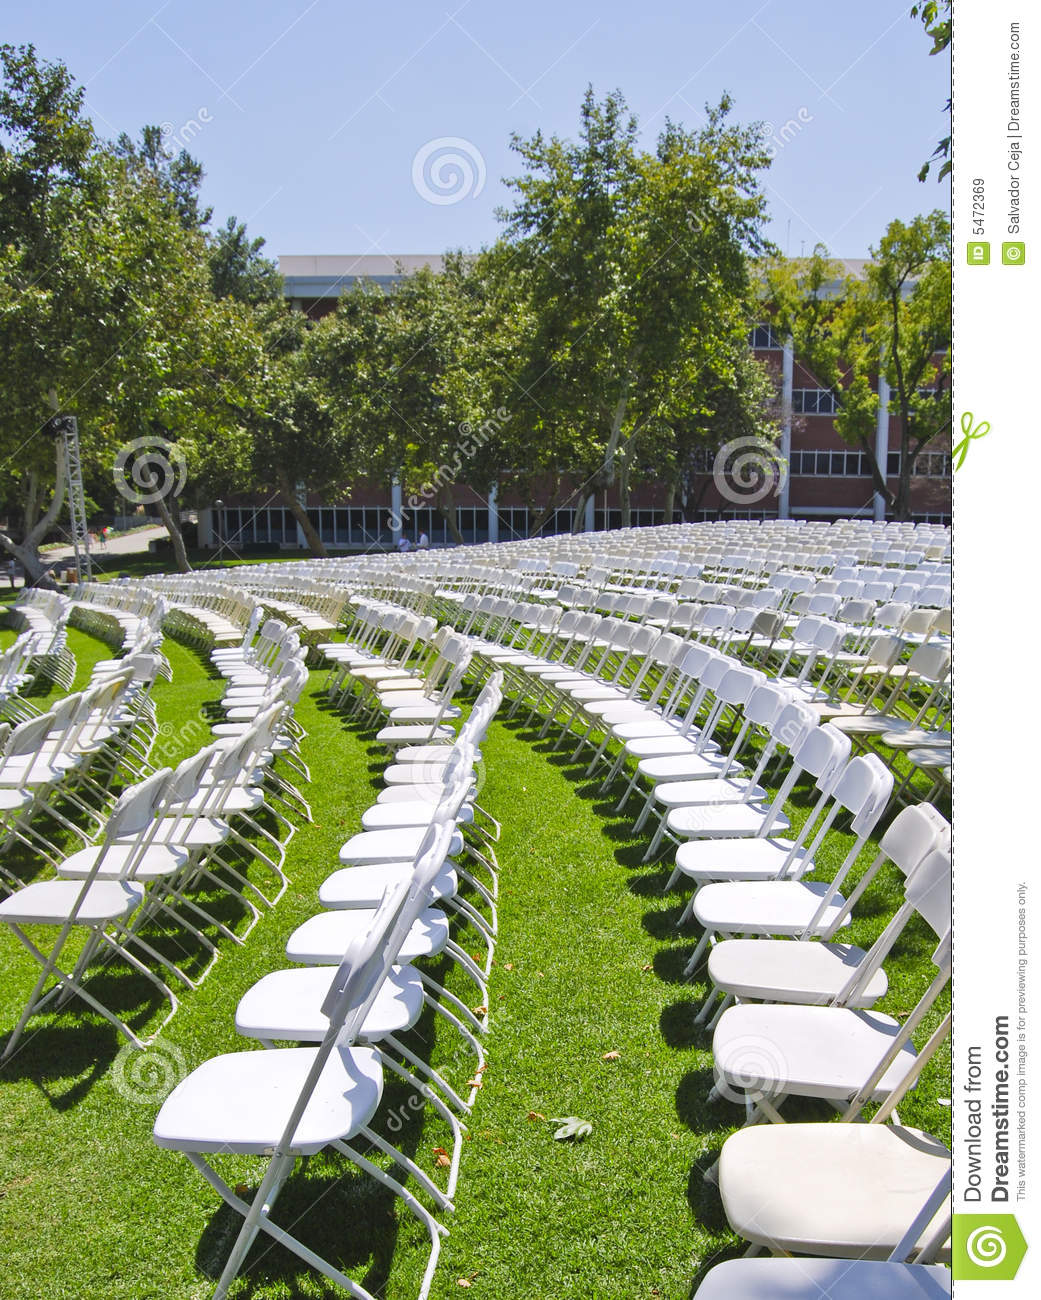 Graduation Seating Stock Image Image Of Attendees